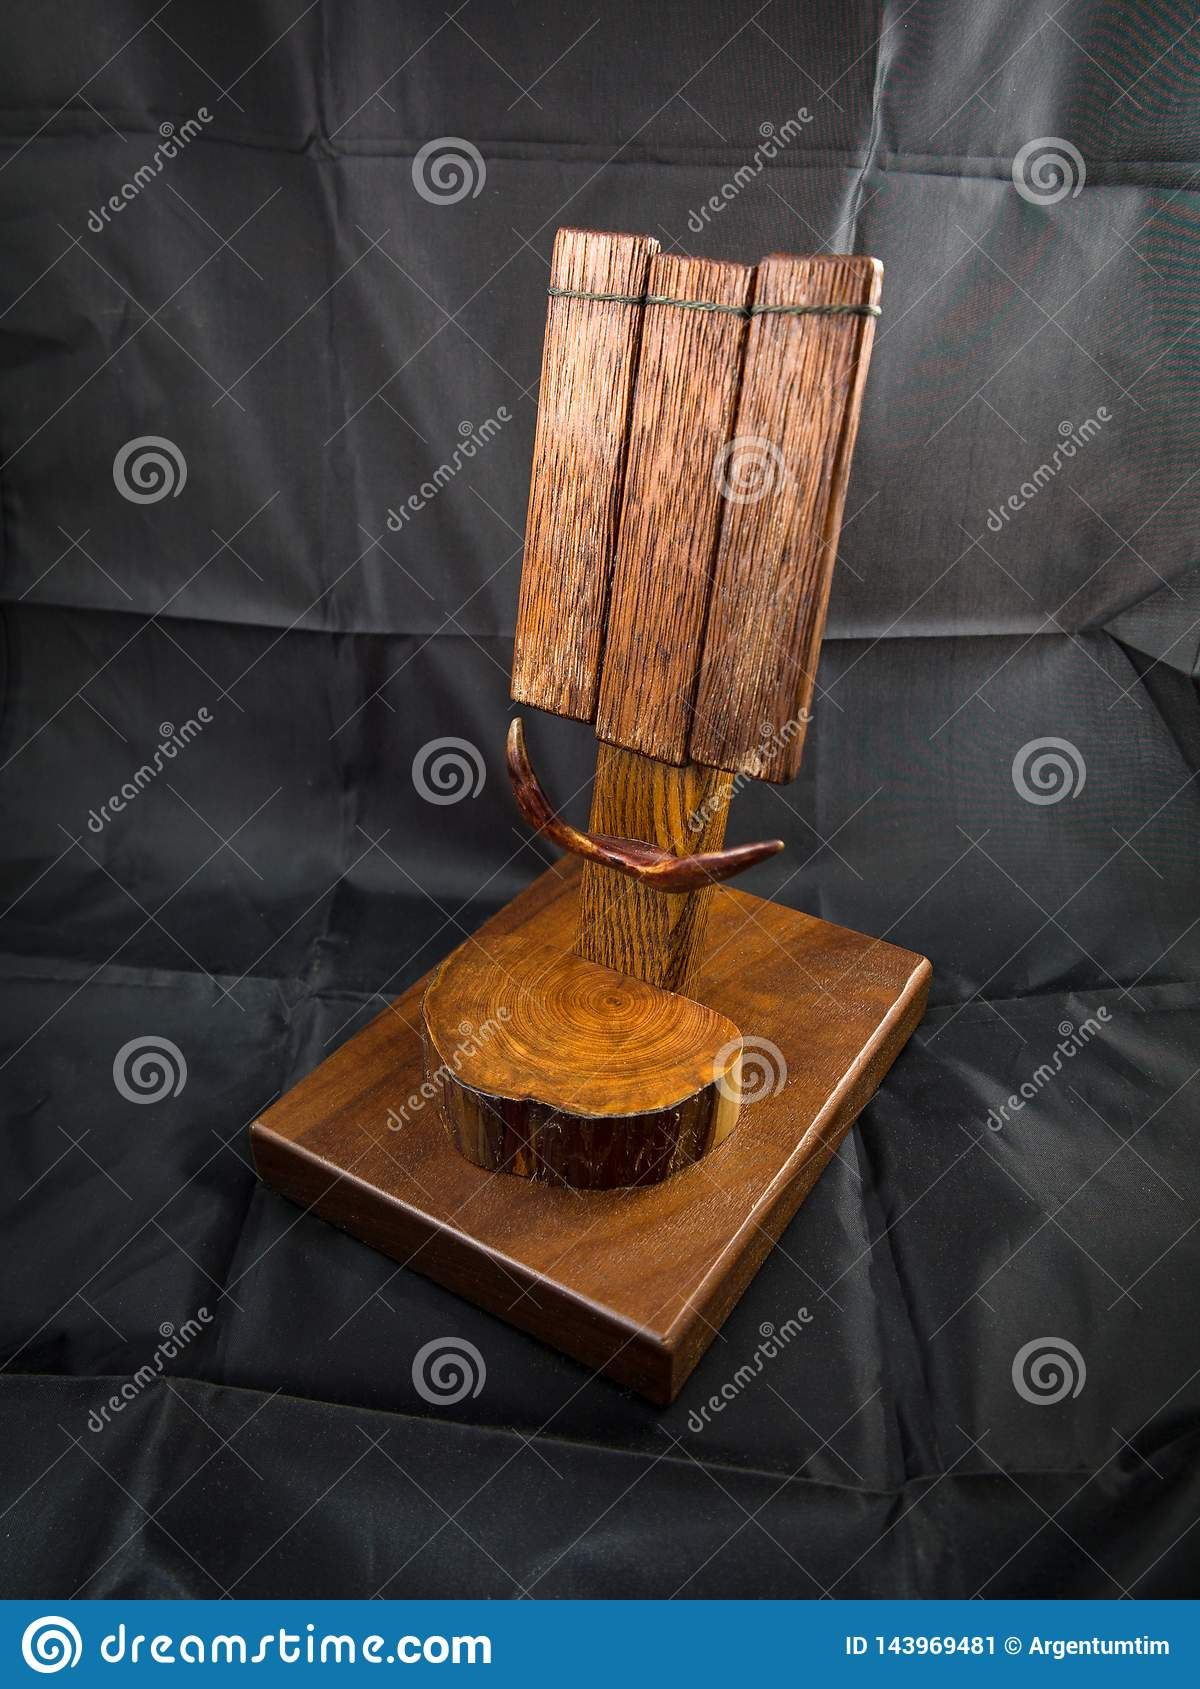 Wooden dock station or a stand for cellular mobile phone